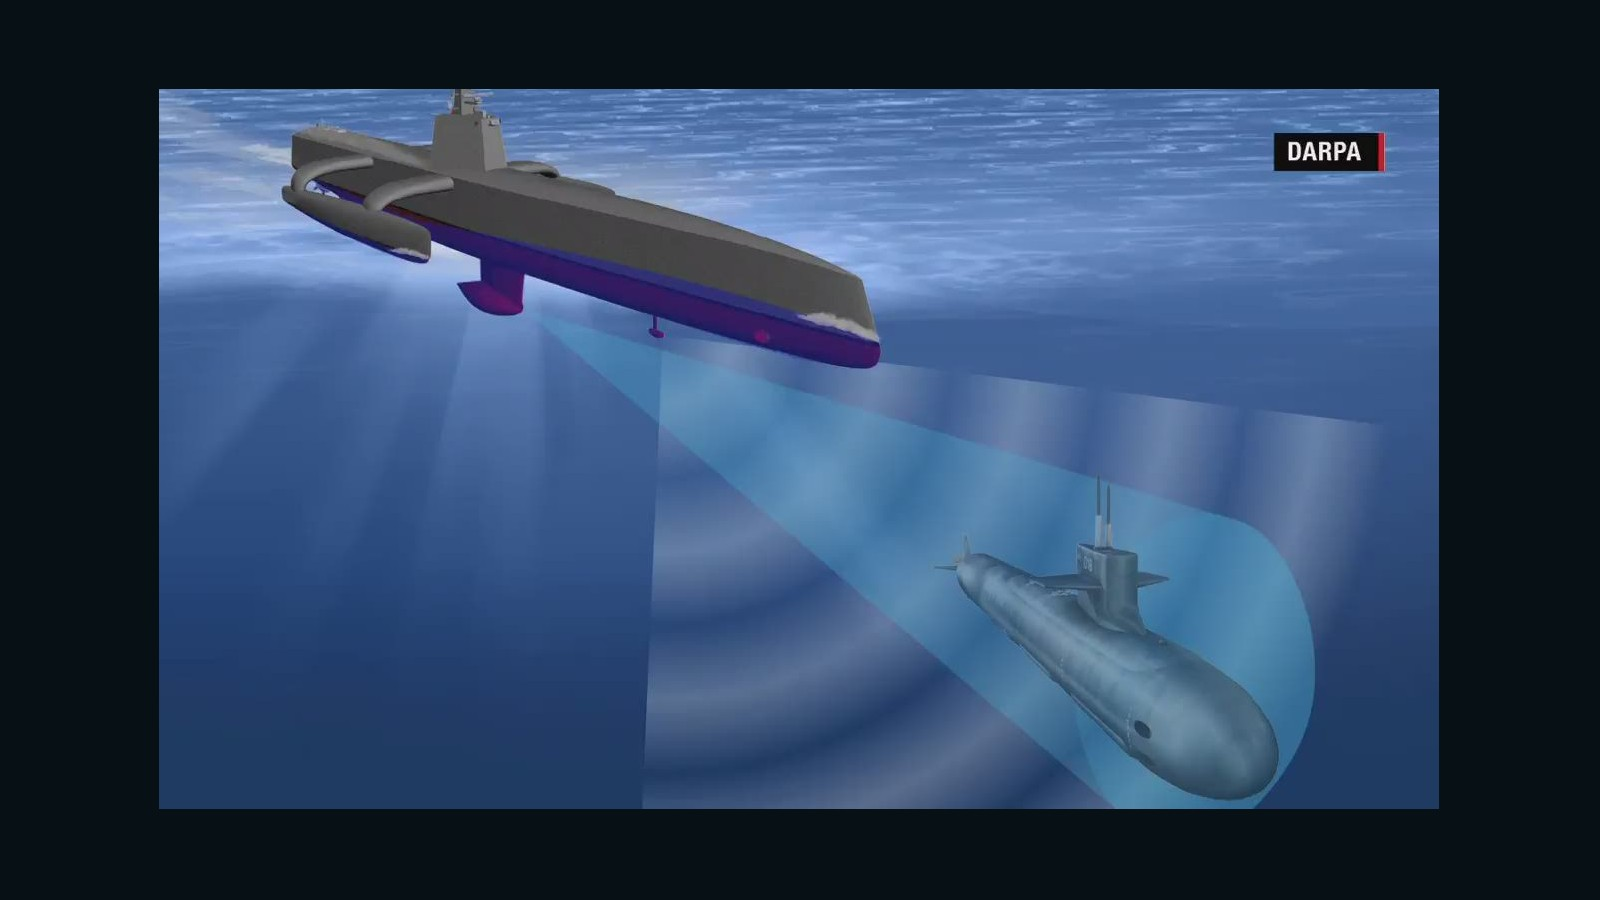 u.s. navy tests new submarine-hunting drone ship - cnn